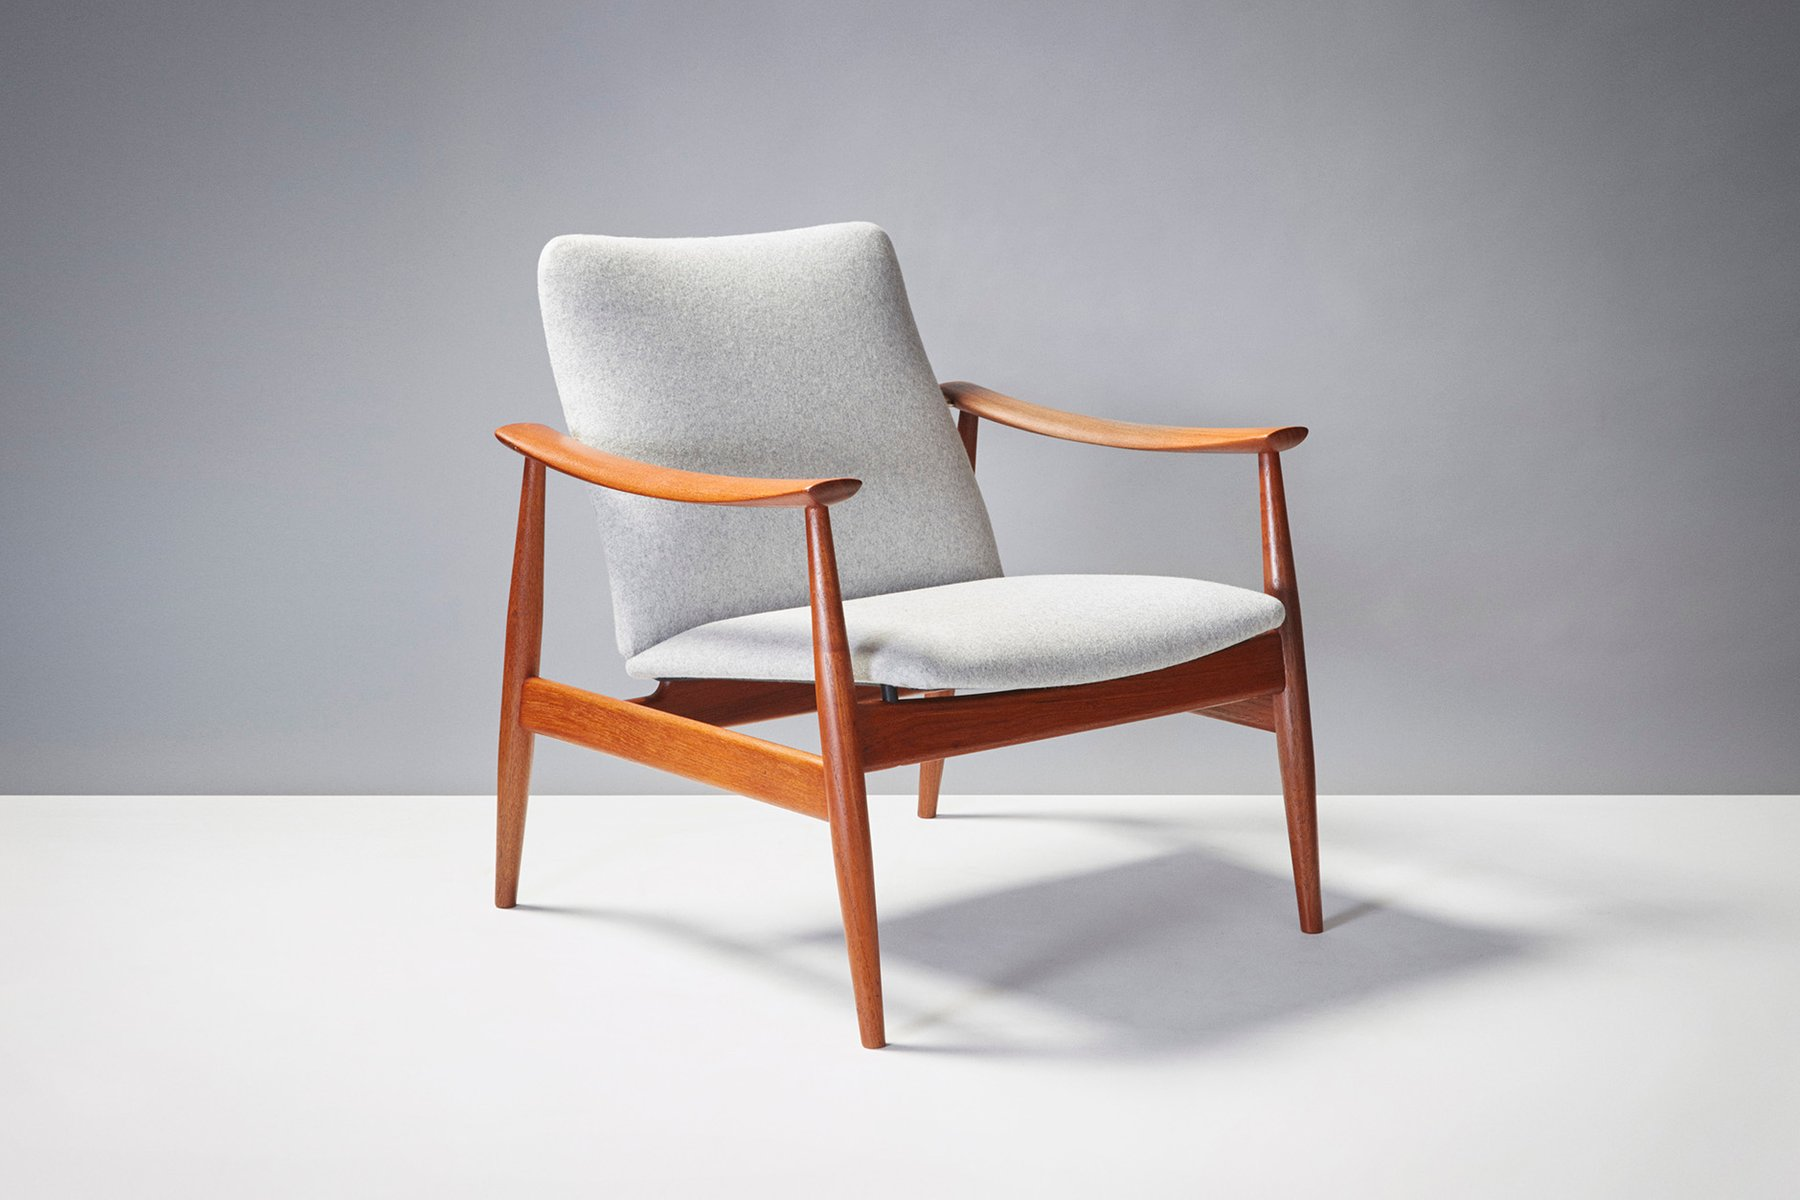 Model 138 Chair By Finn Juhl For France U0026 Son, 1950s For Sale At Pamono